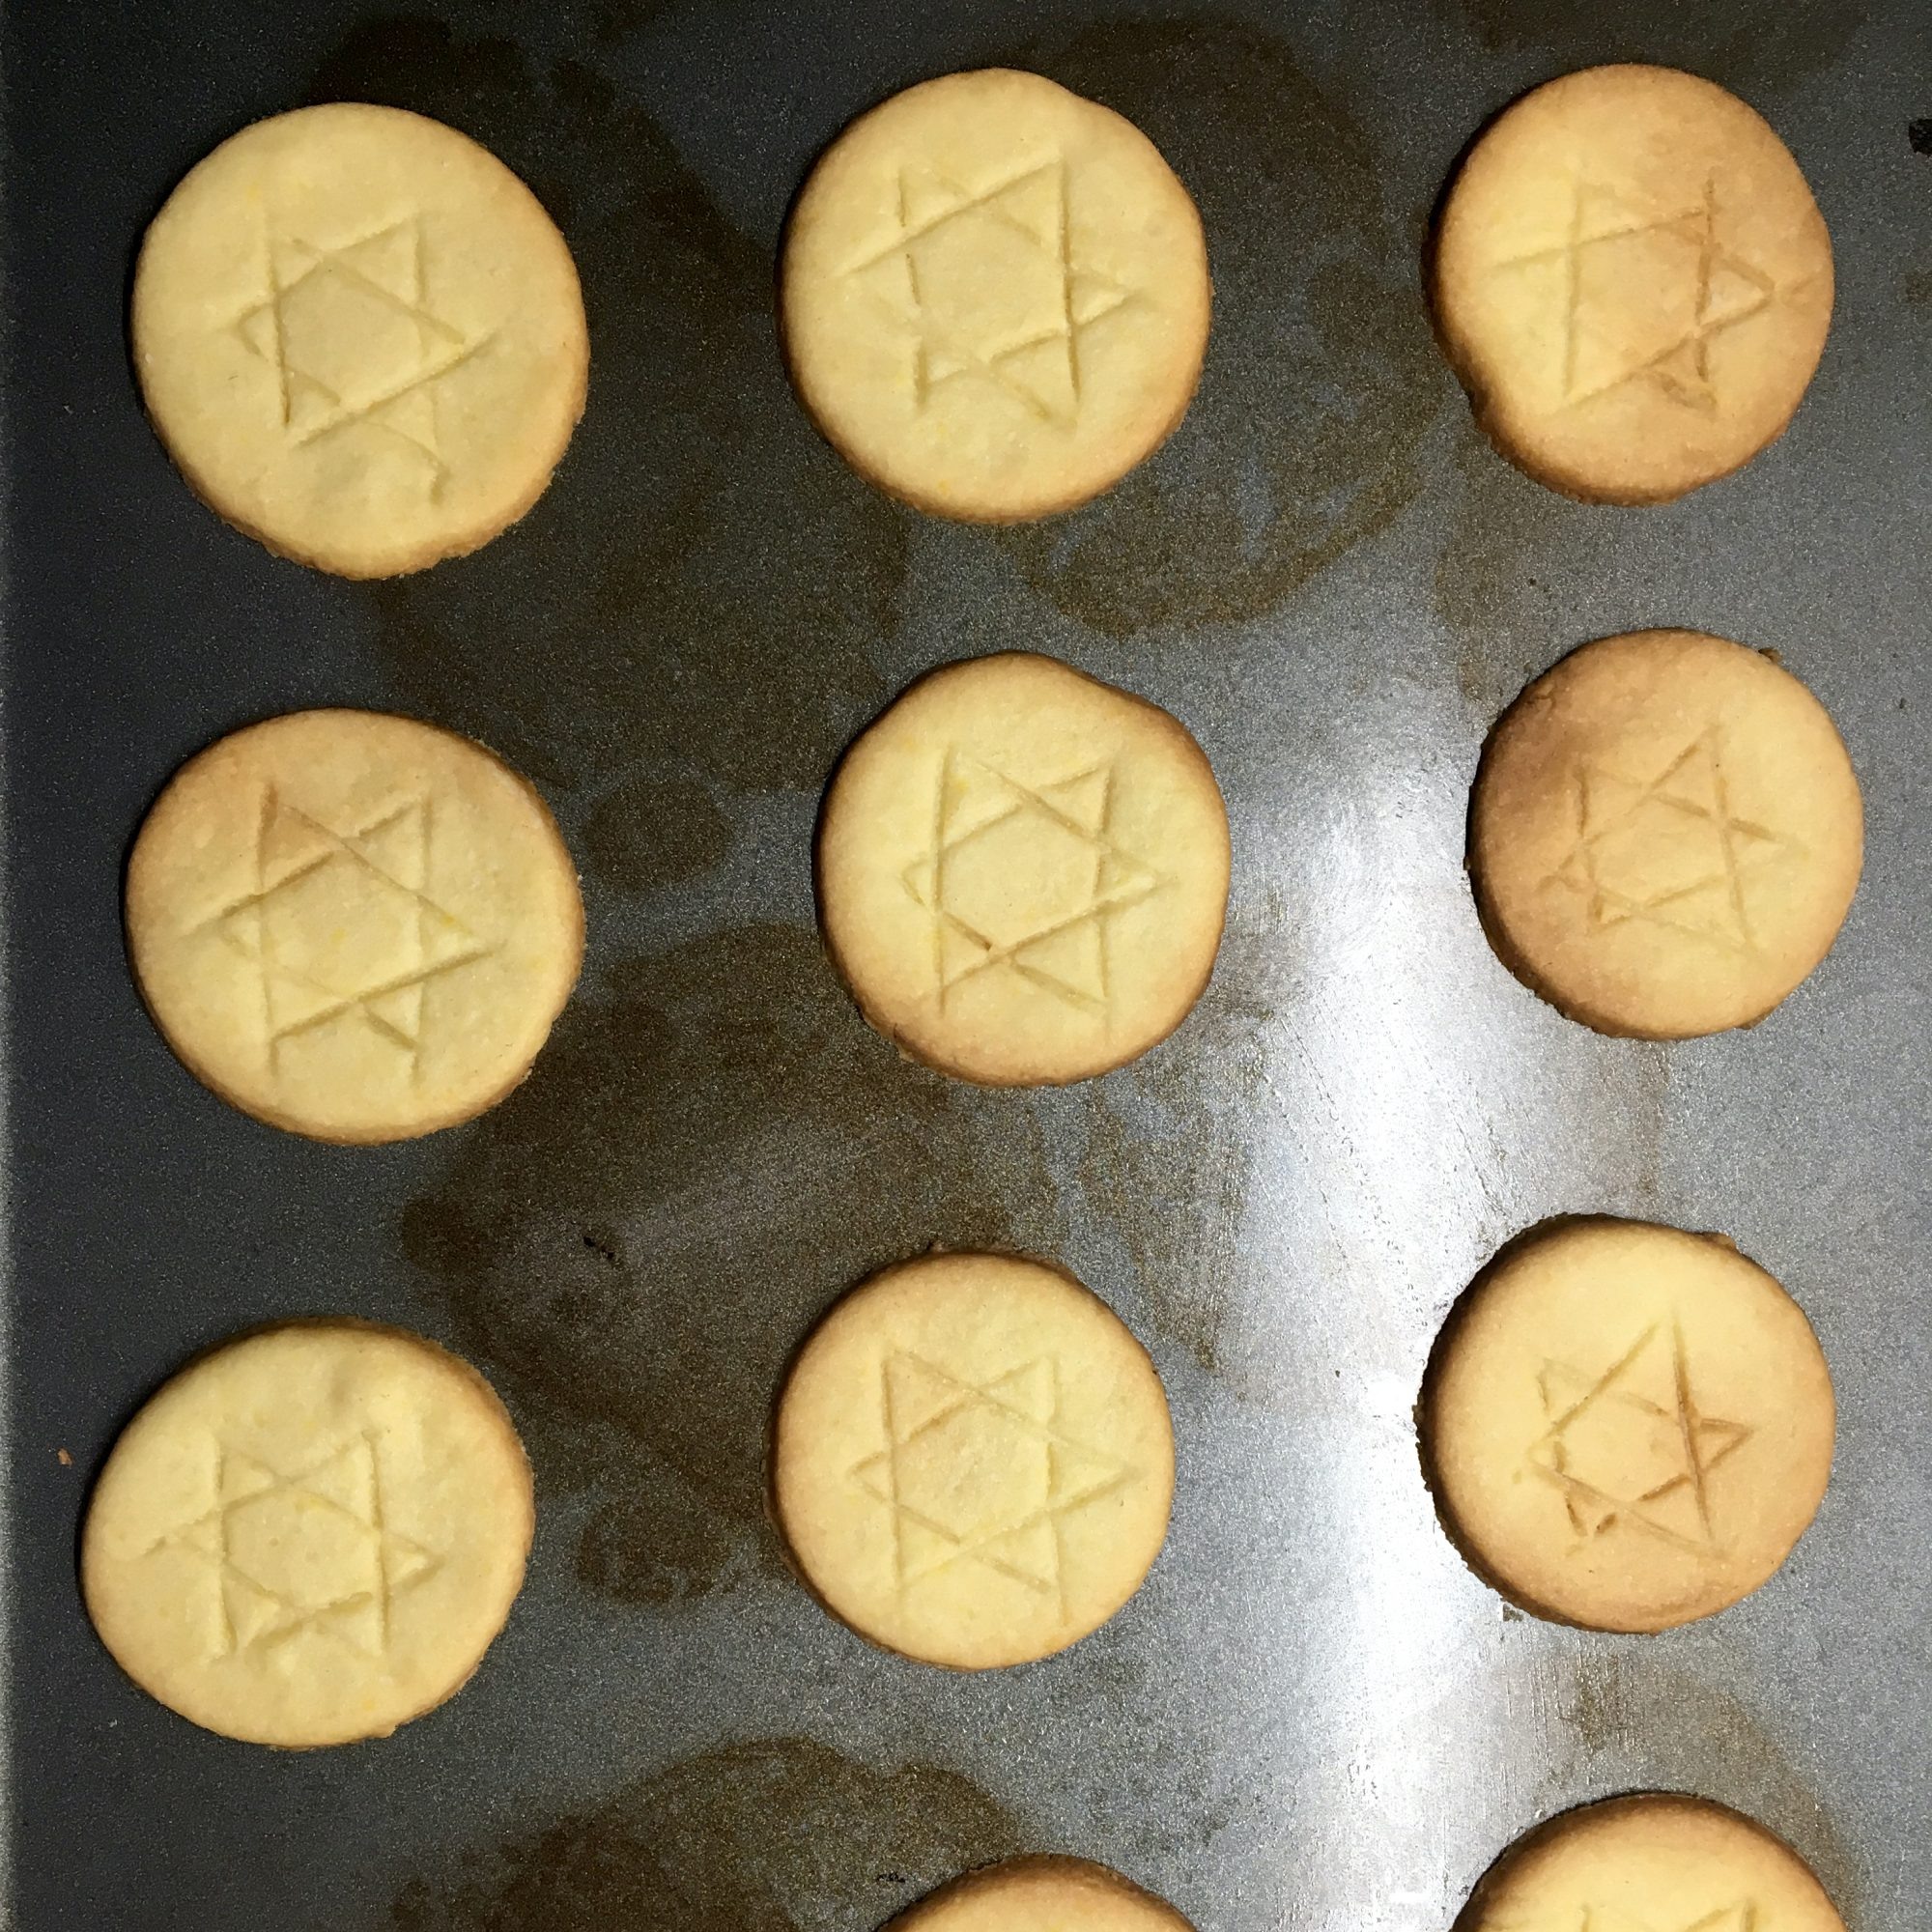 tray of Chanukah Cookies with Star of David design